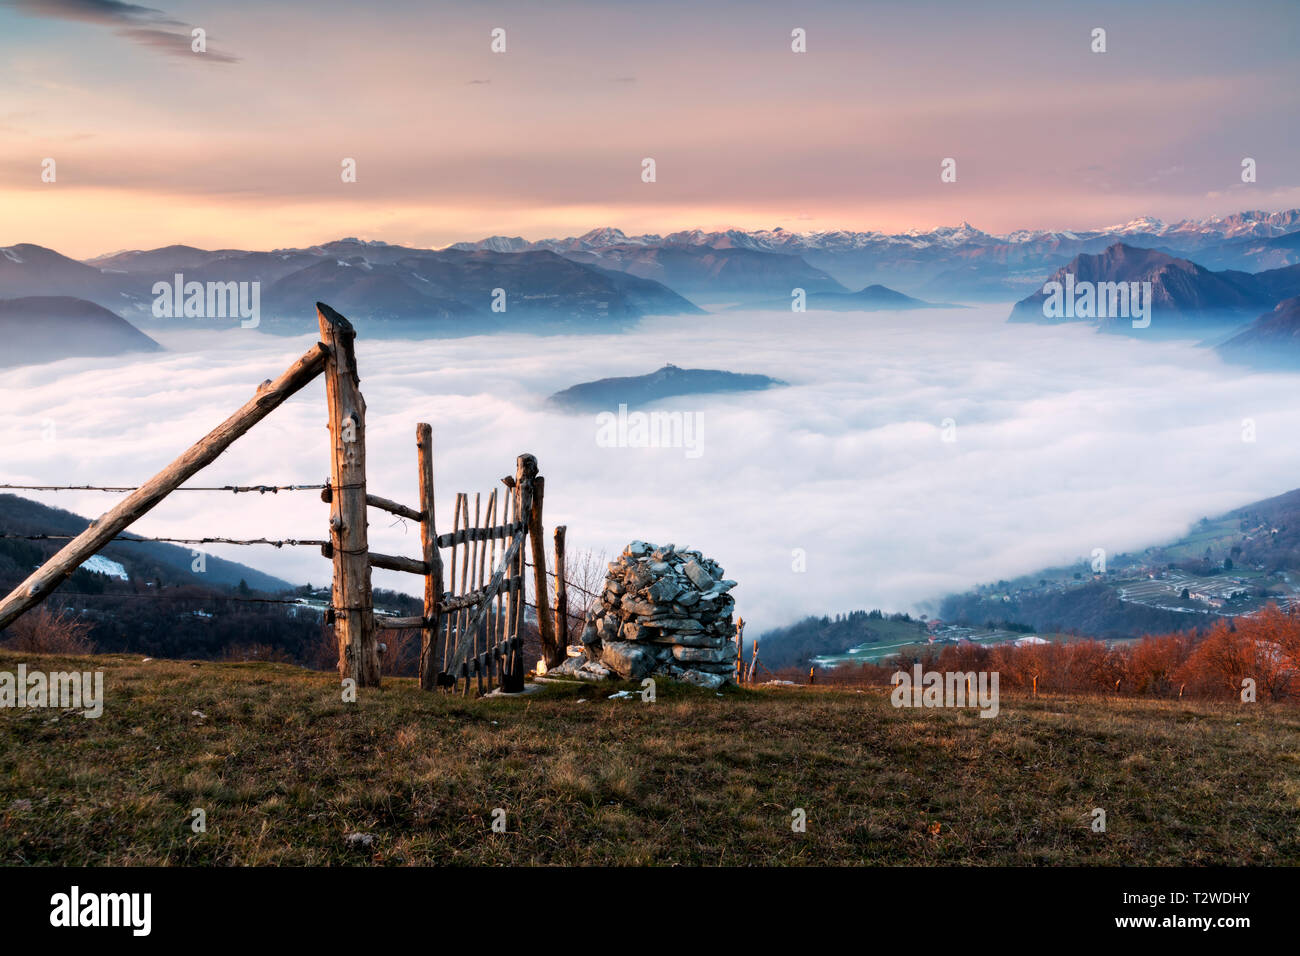 Iseo lake under the fog at sunset, Brescia province, Lombardy district in Italy, Europe. - Stock Image